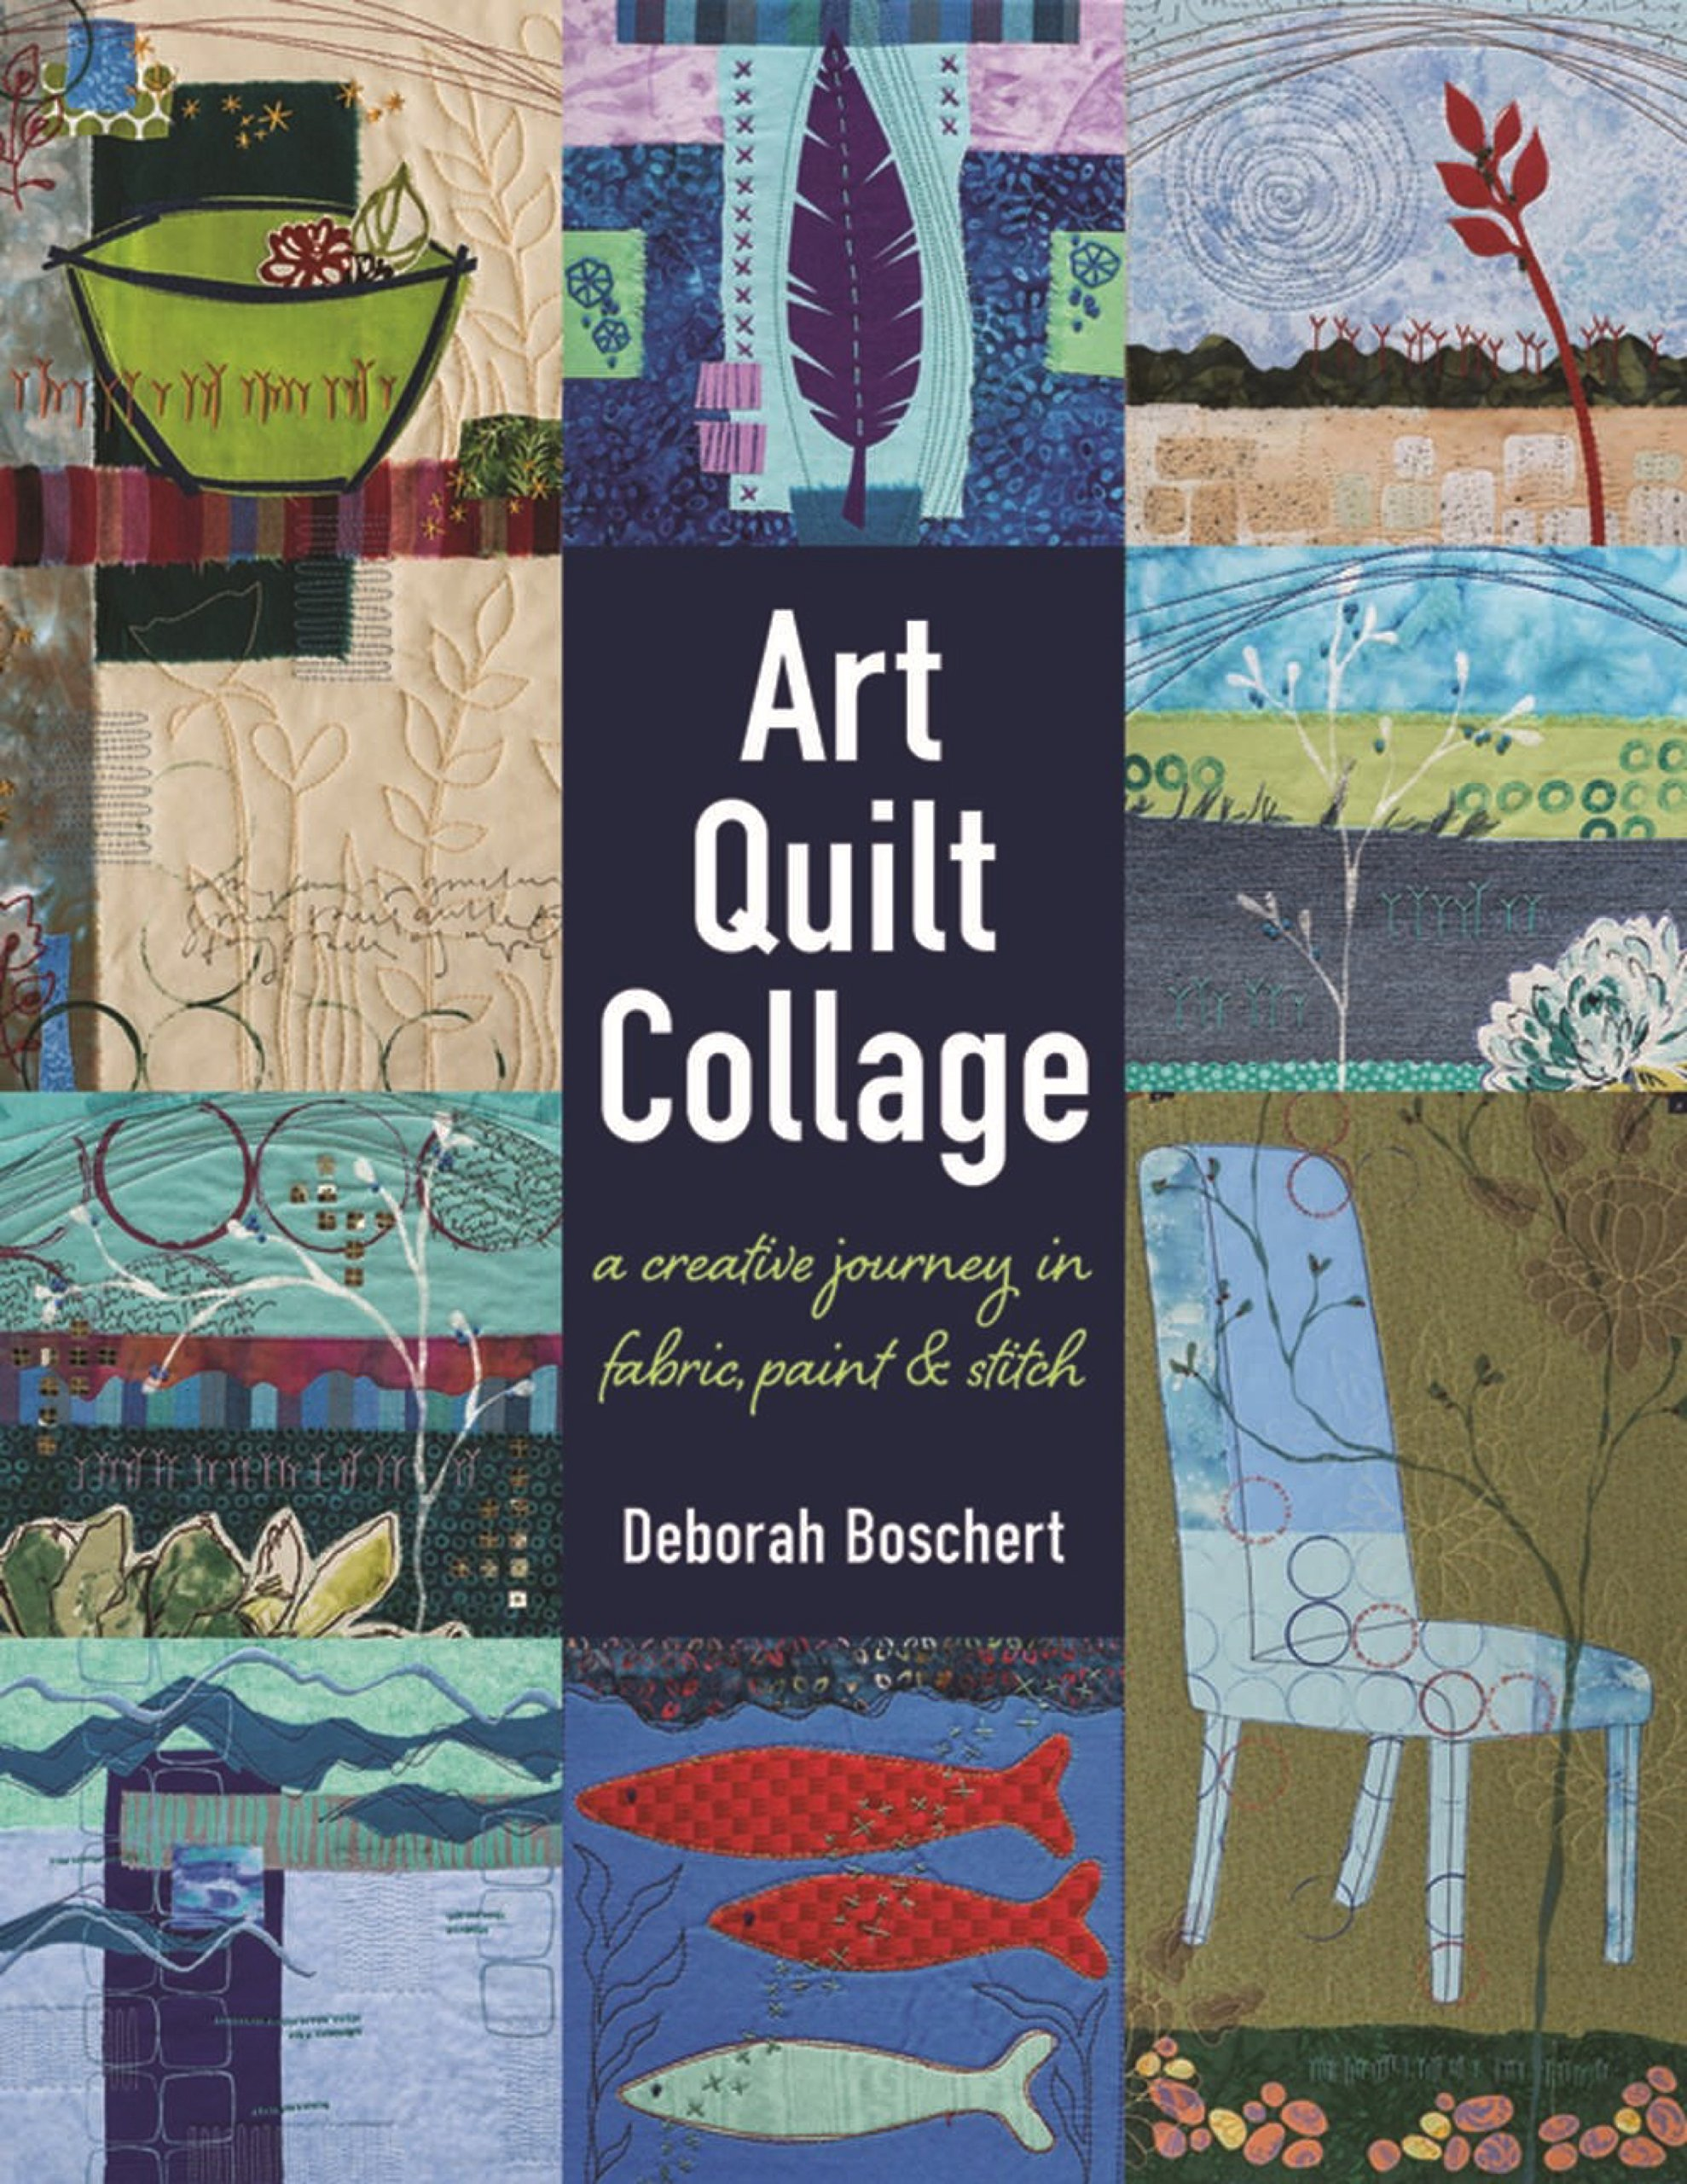 Art Quilt Collage: A Creative Journey in Fabric, Paint & Stitch